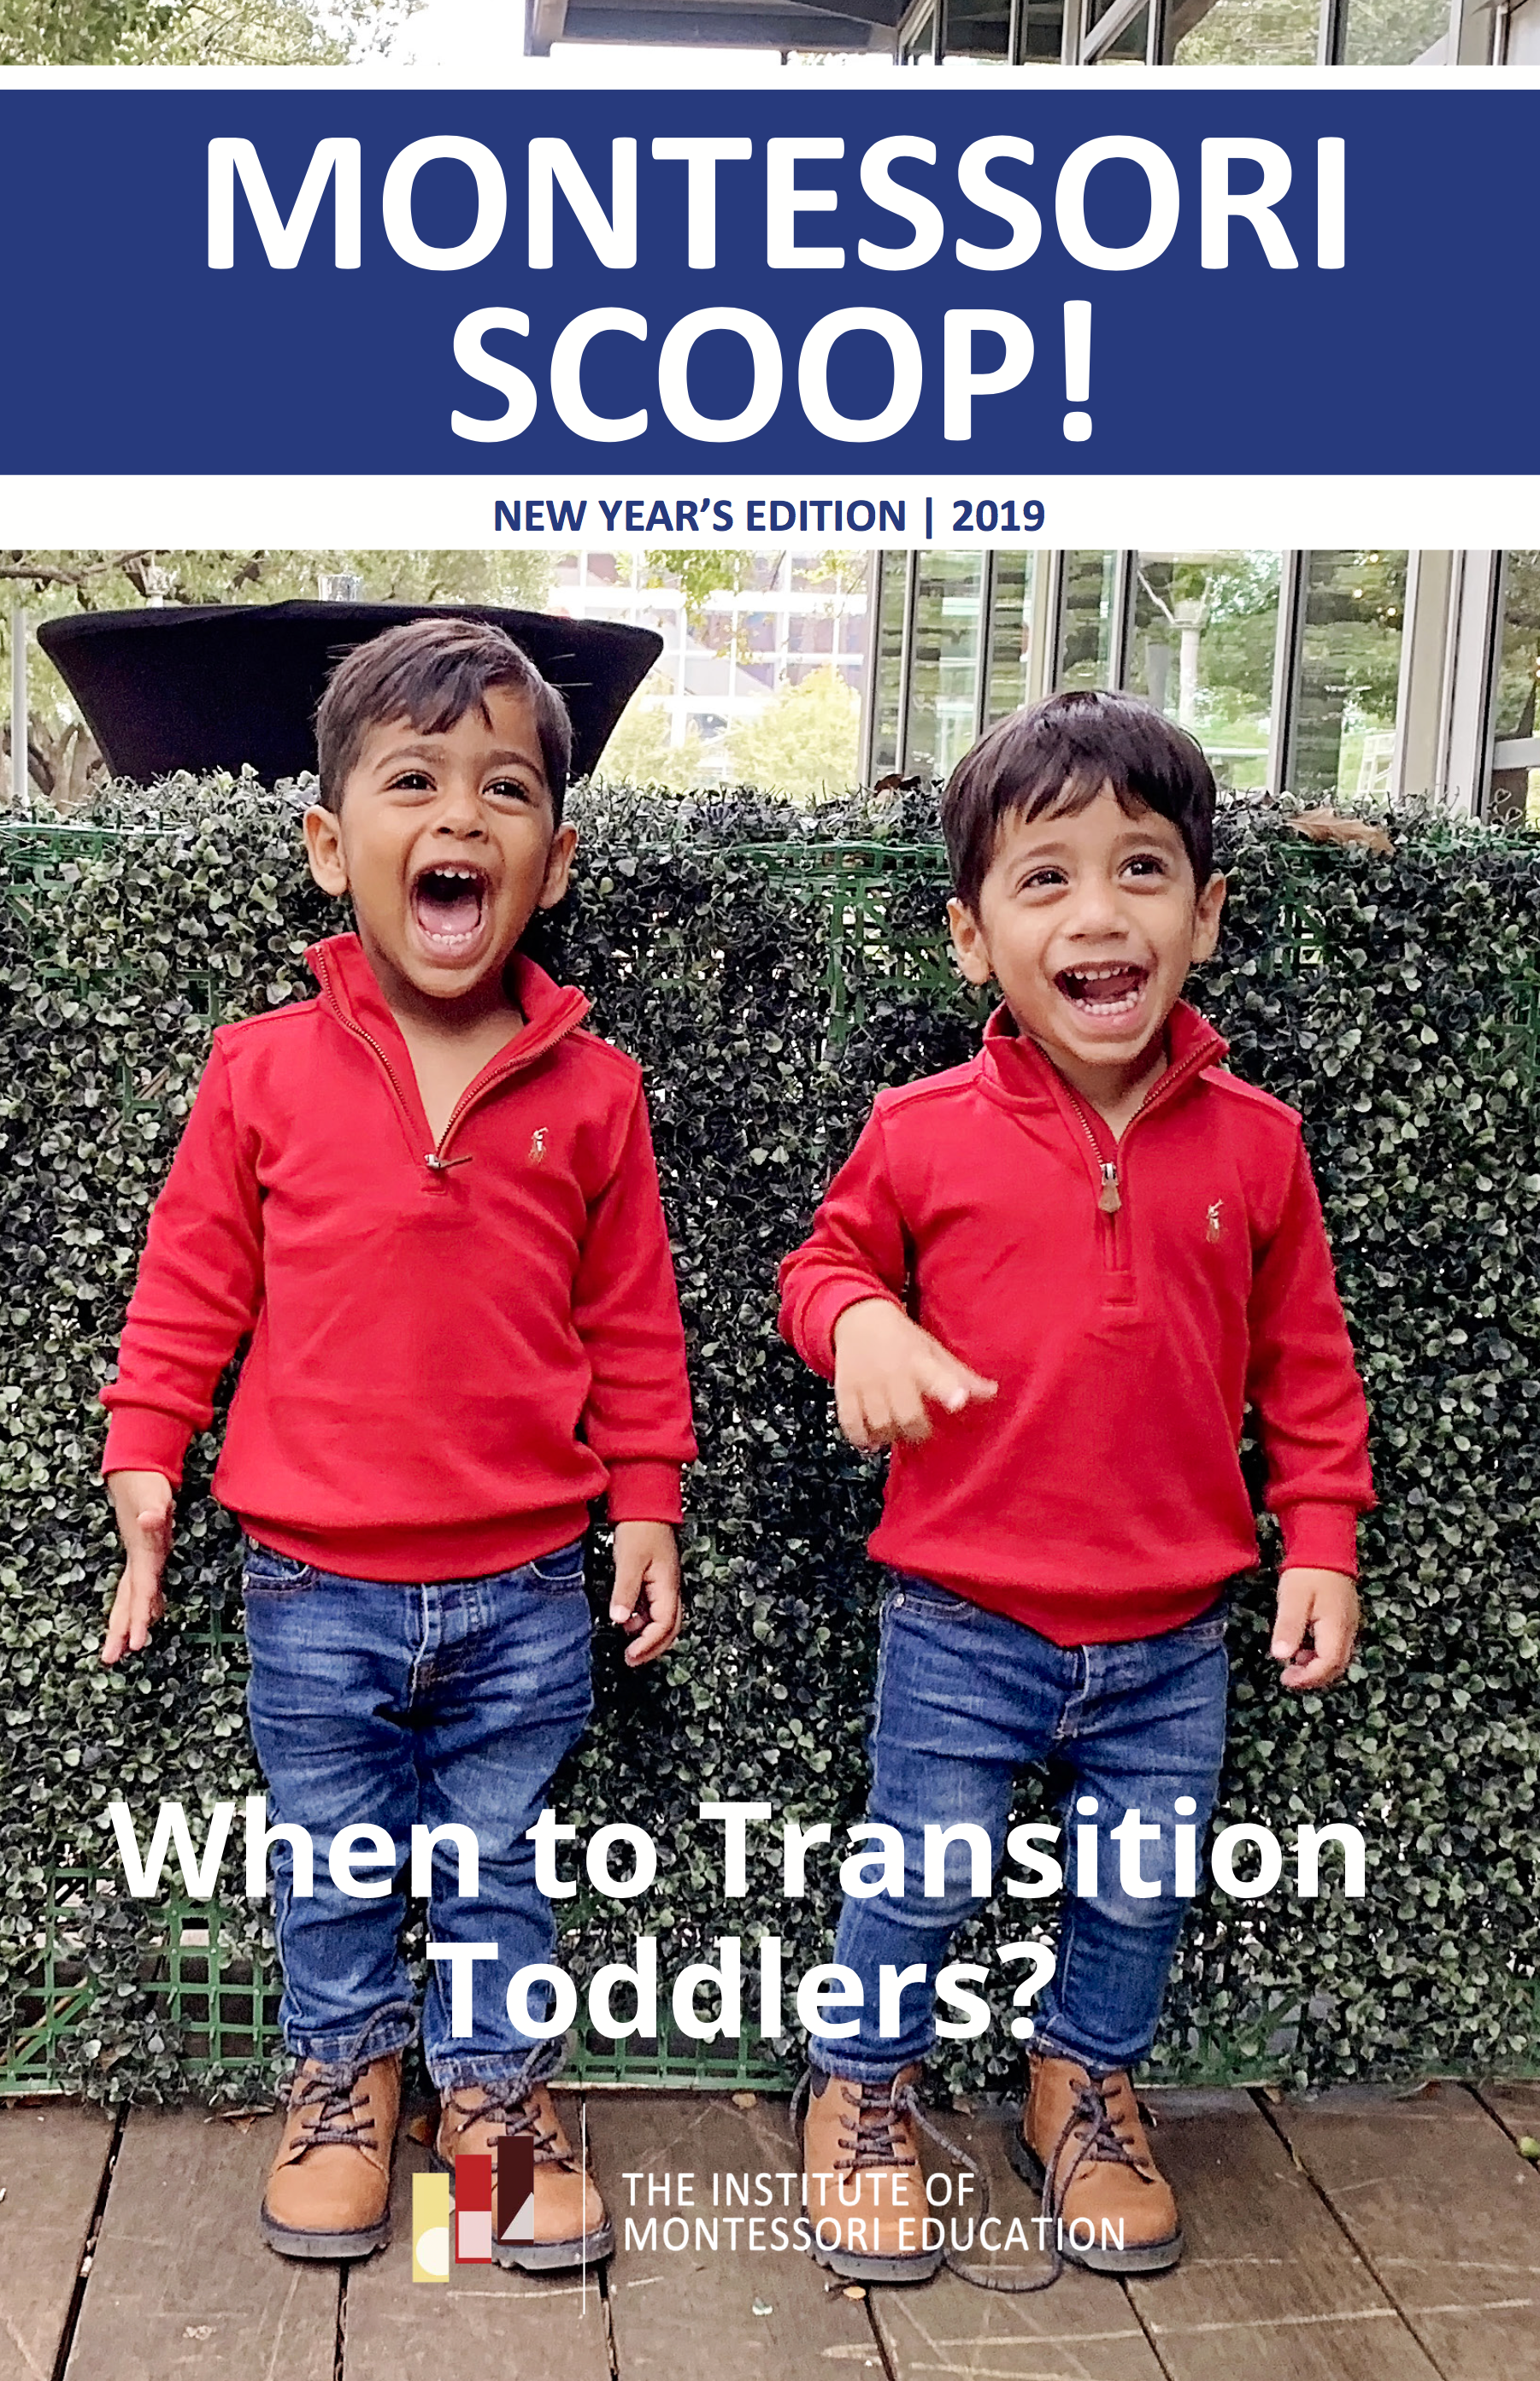 New Year's Edition 2019 - Featuring: Wendy Shenk-Evans from Montessori Public Policy Initiative, Martha Teien from MEPI, Inc, Kathy Leitch from International Montessori Council, three school profiles: Redeemer Montessori School, Sherwood Forest Montessori School, Montessori School of Fort Worth and much more!